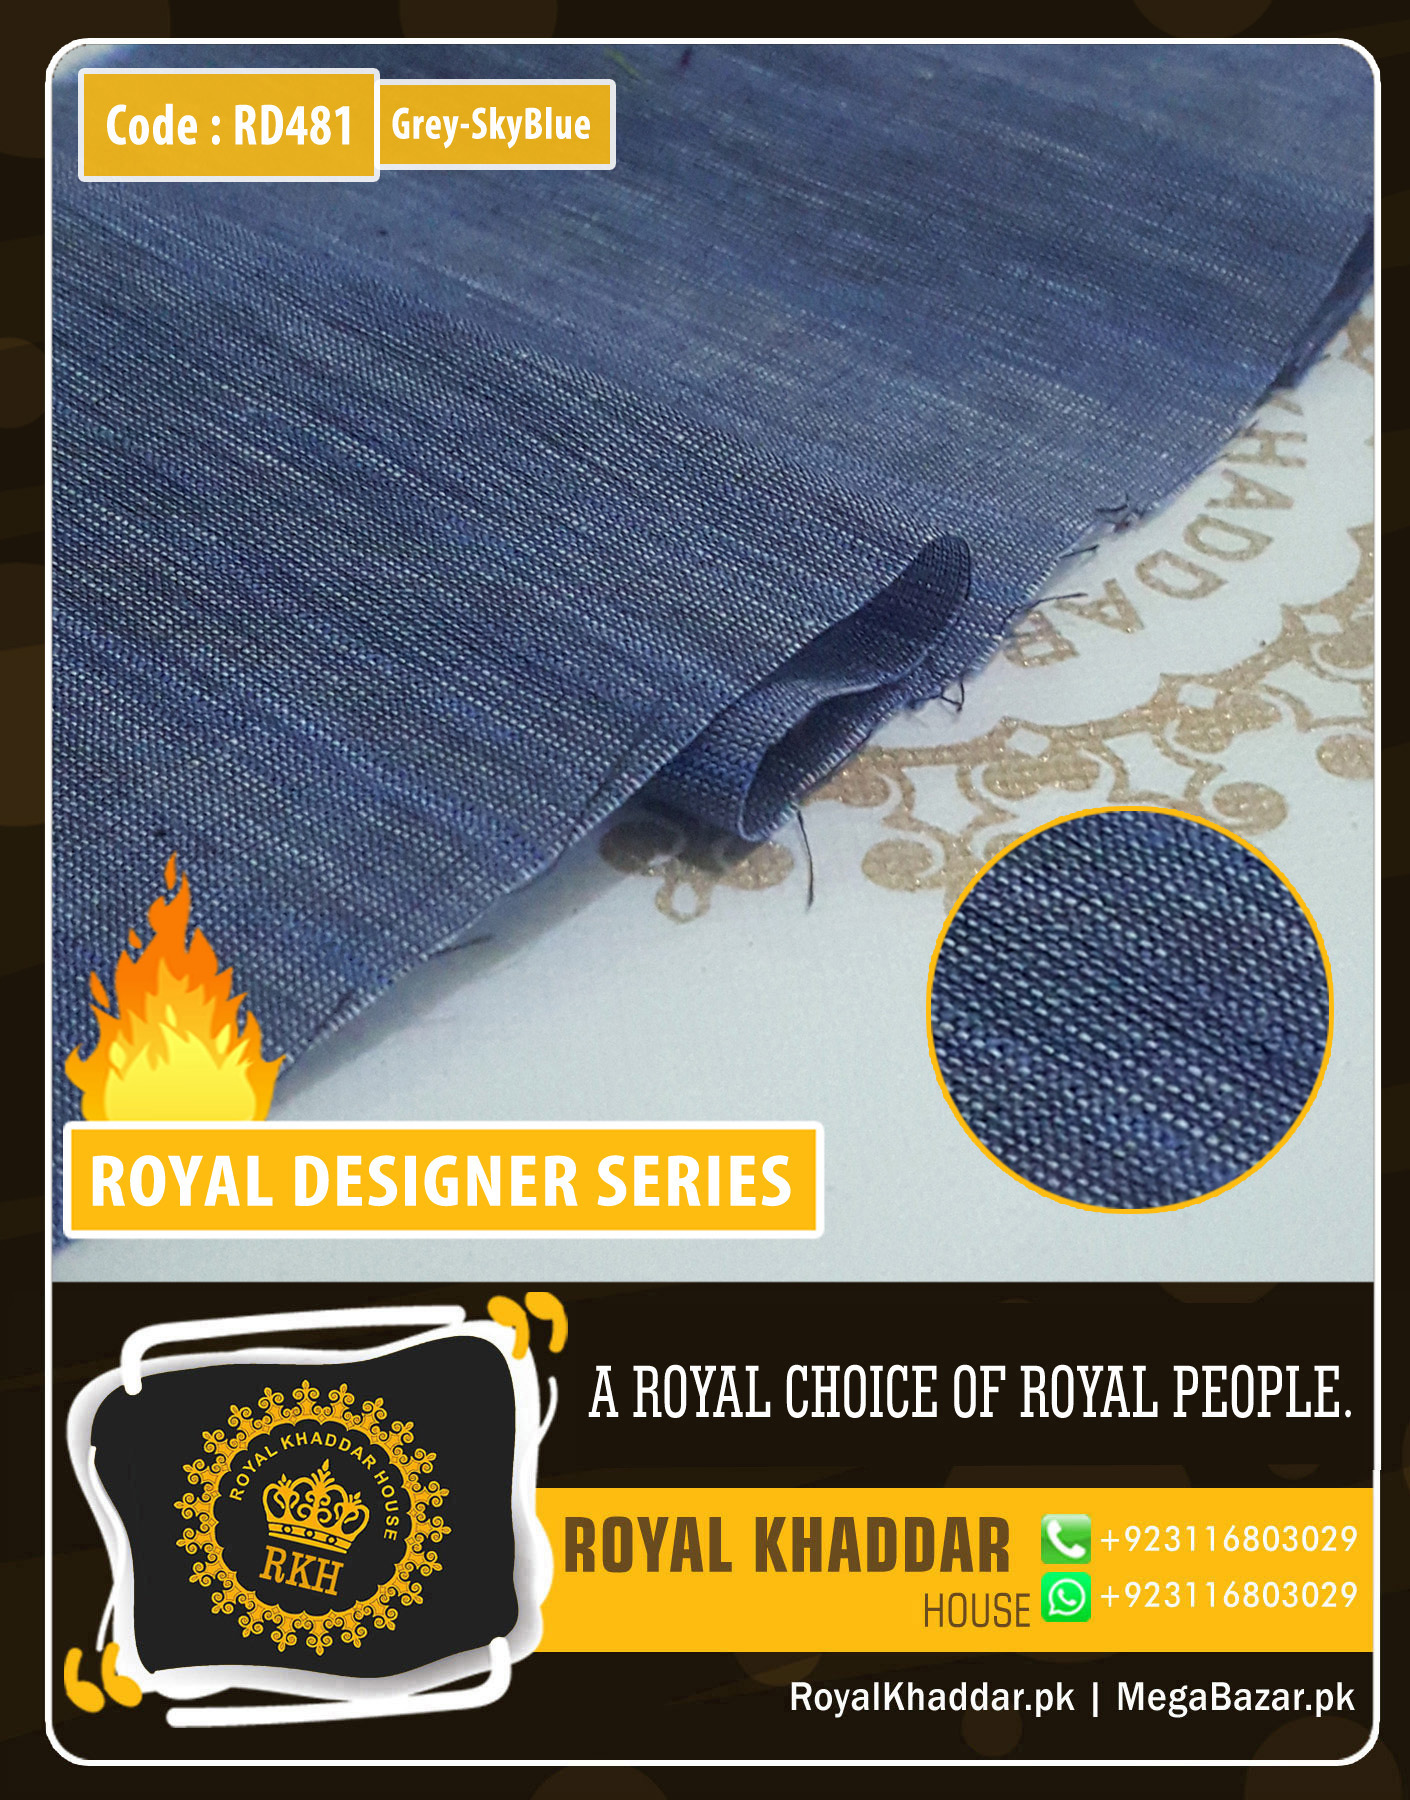 Skyblue Grey Royal Summer Designer Khaddar RD481